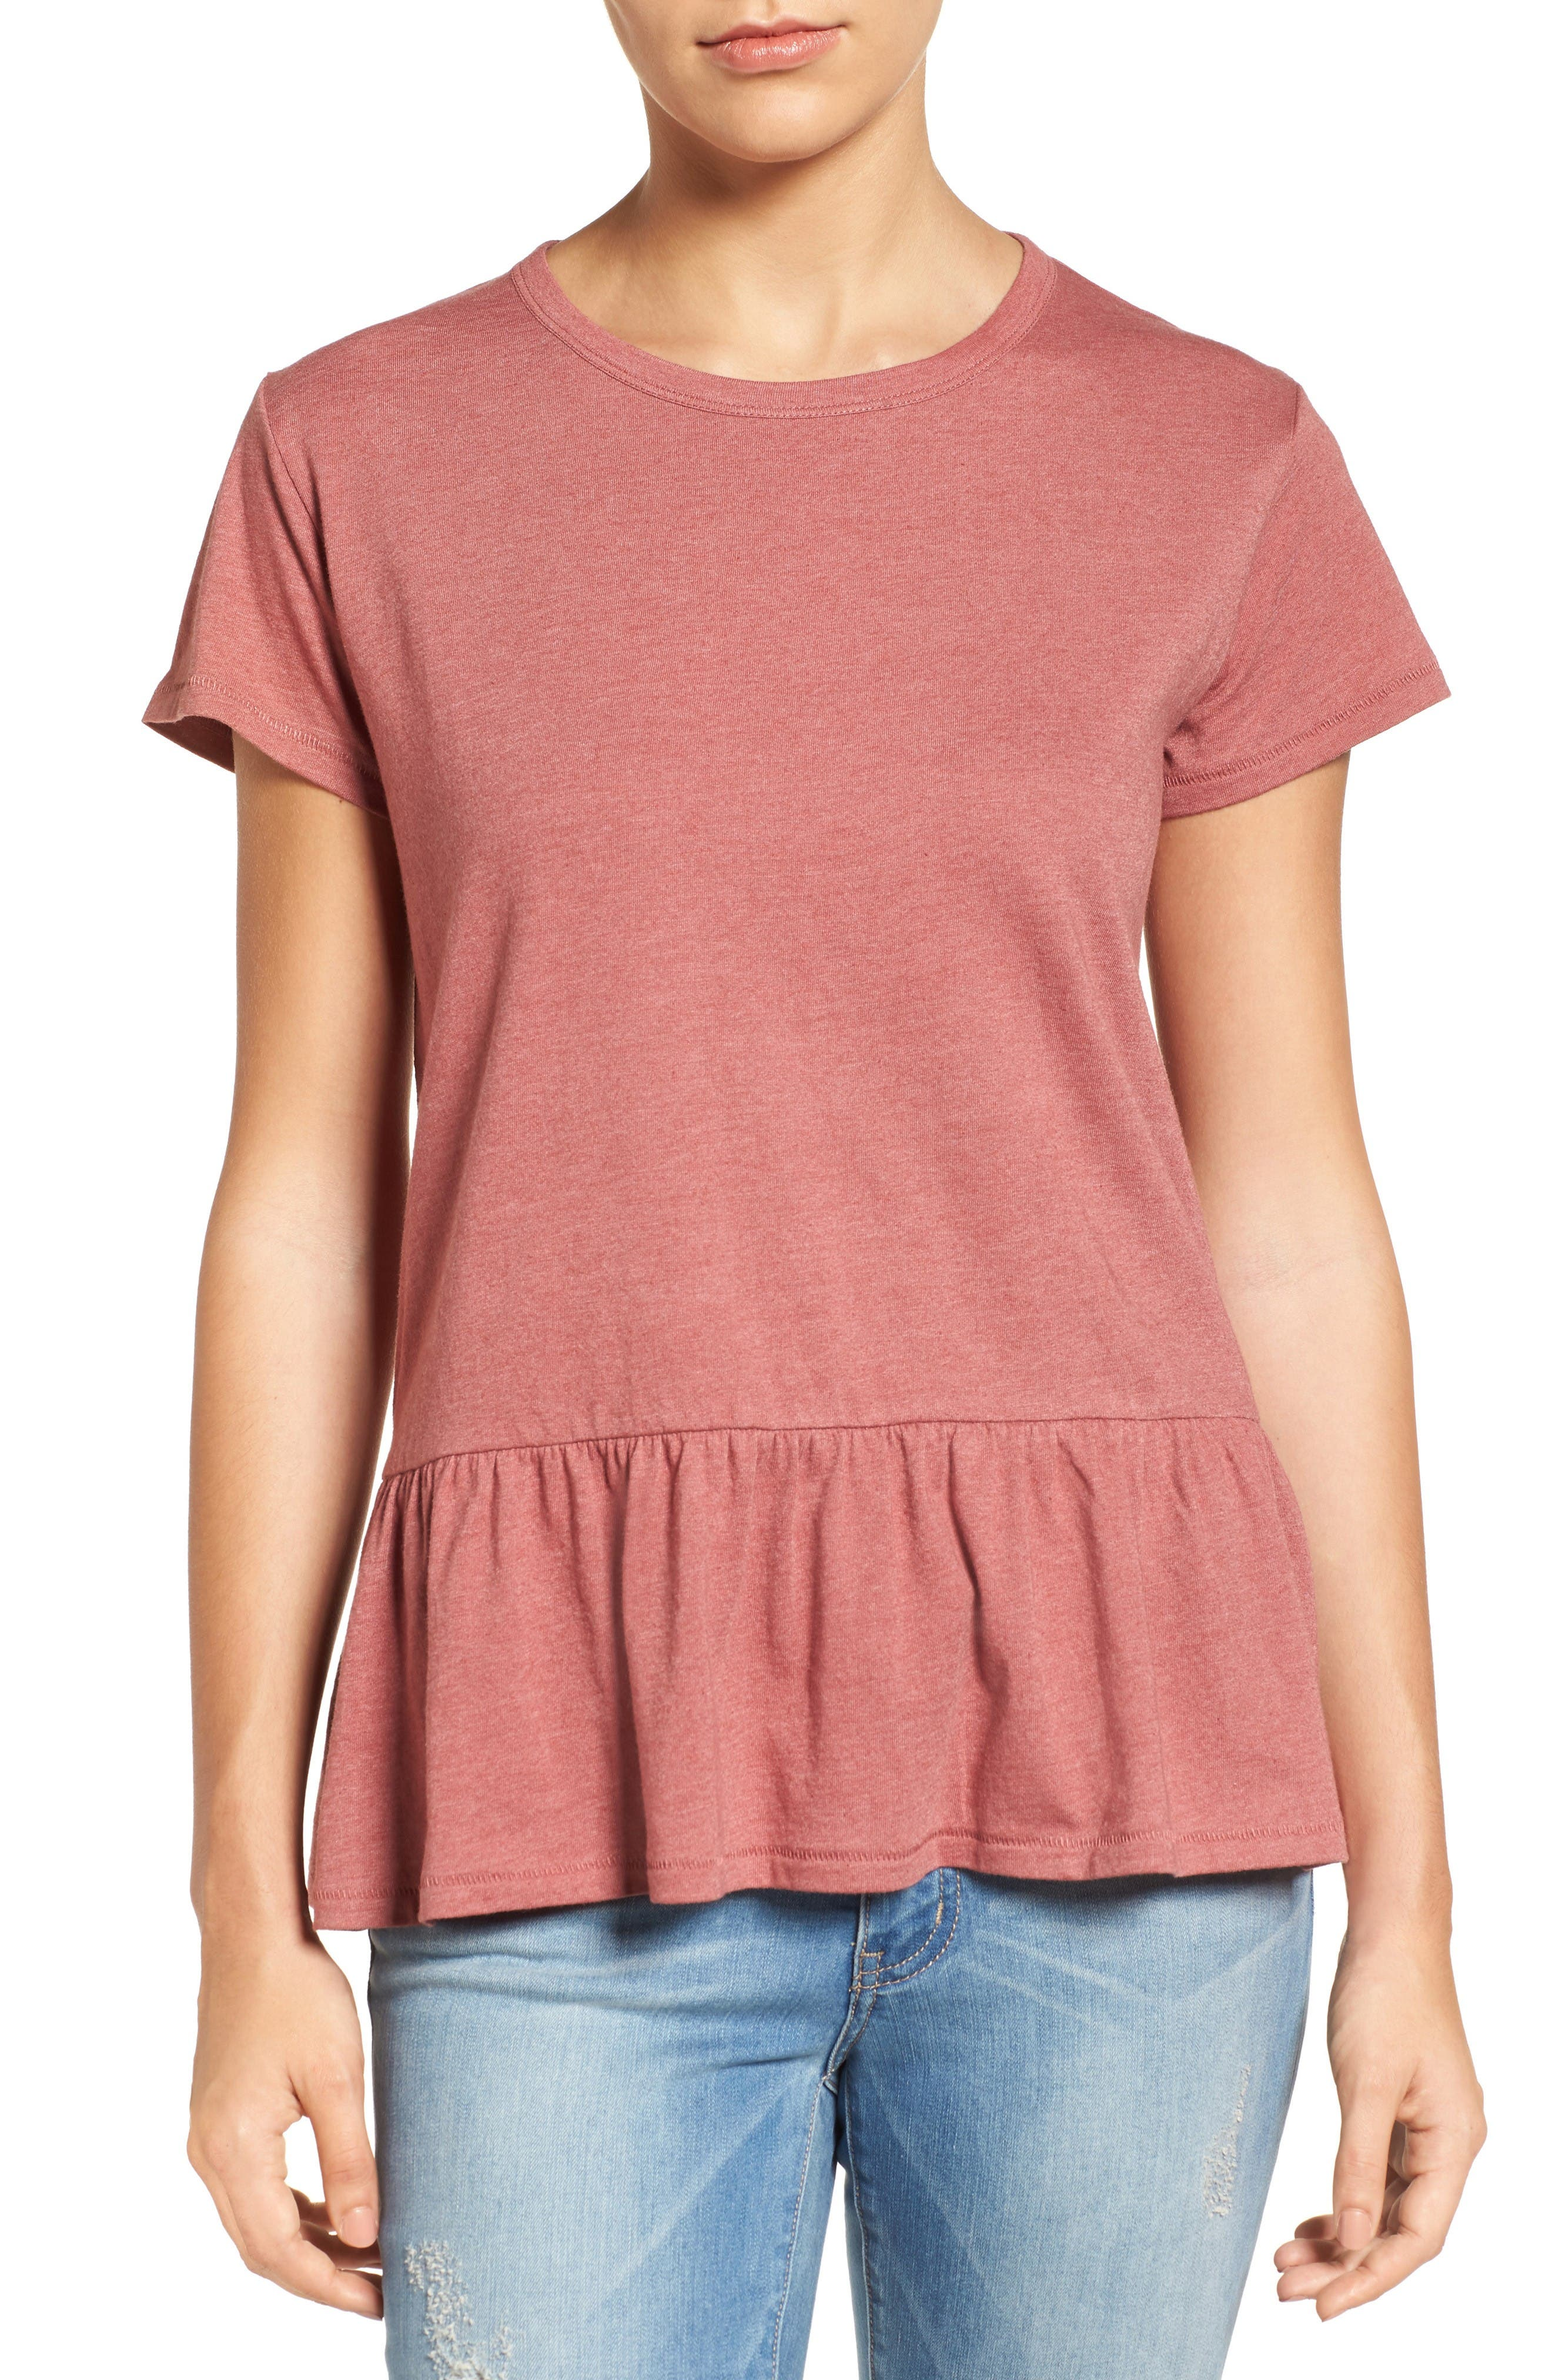 Alternate Image 1 Selected - Caslon® Peplum Tee (Regular & Petite)